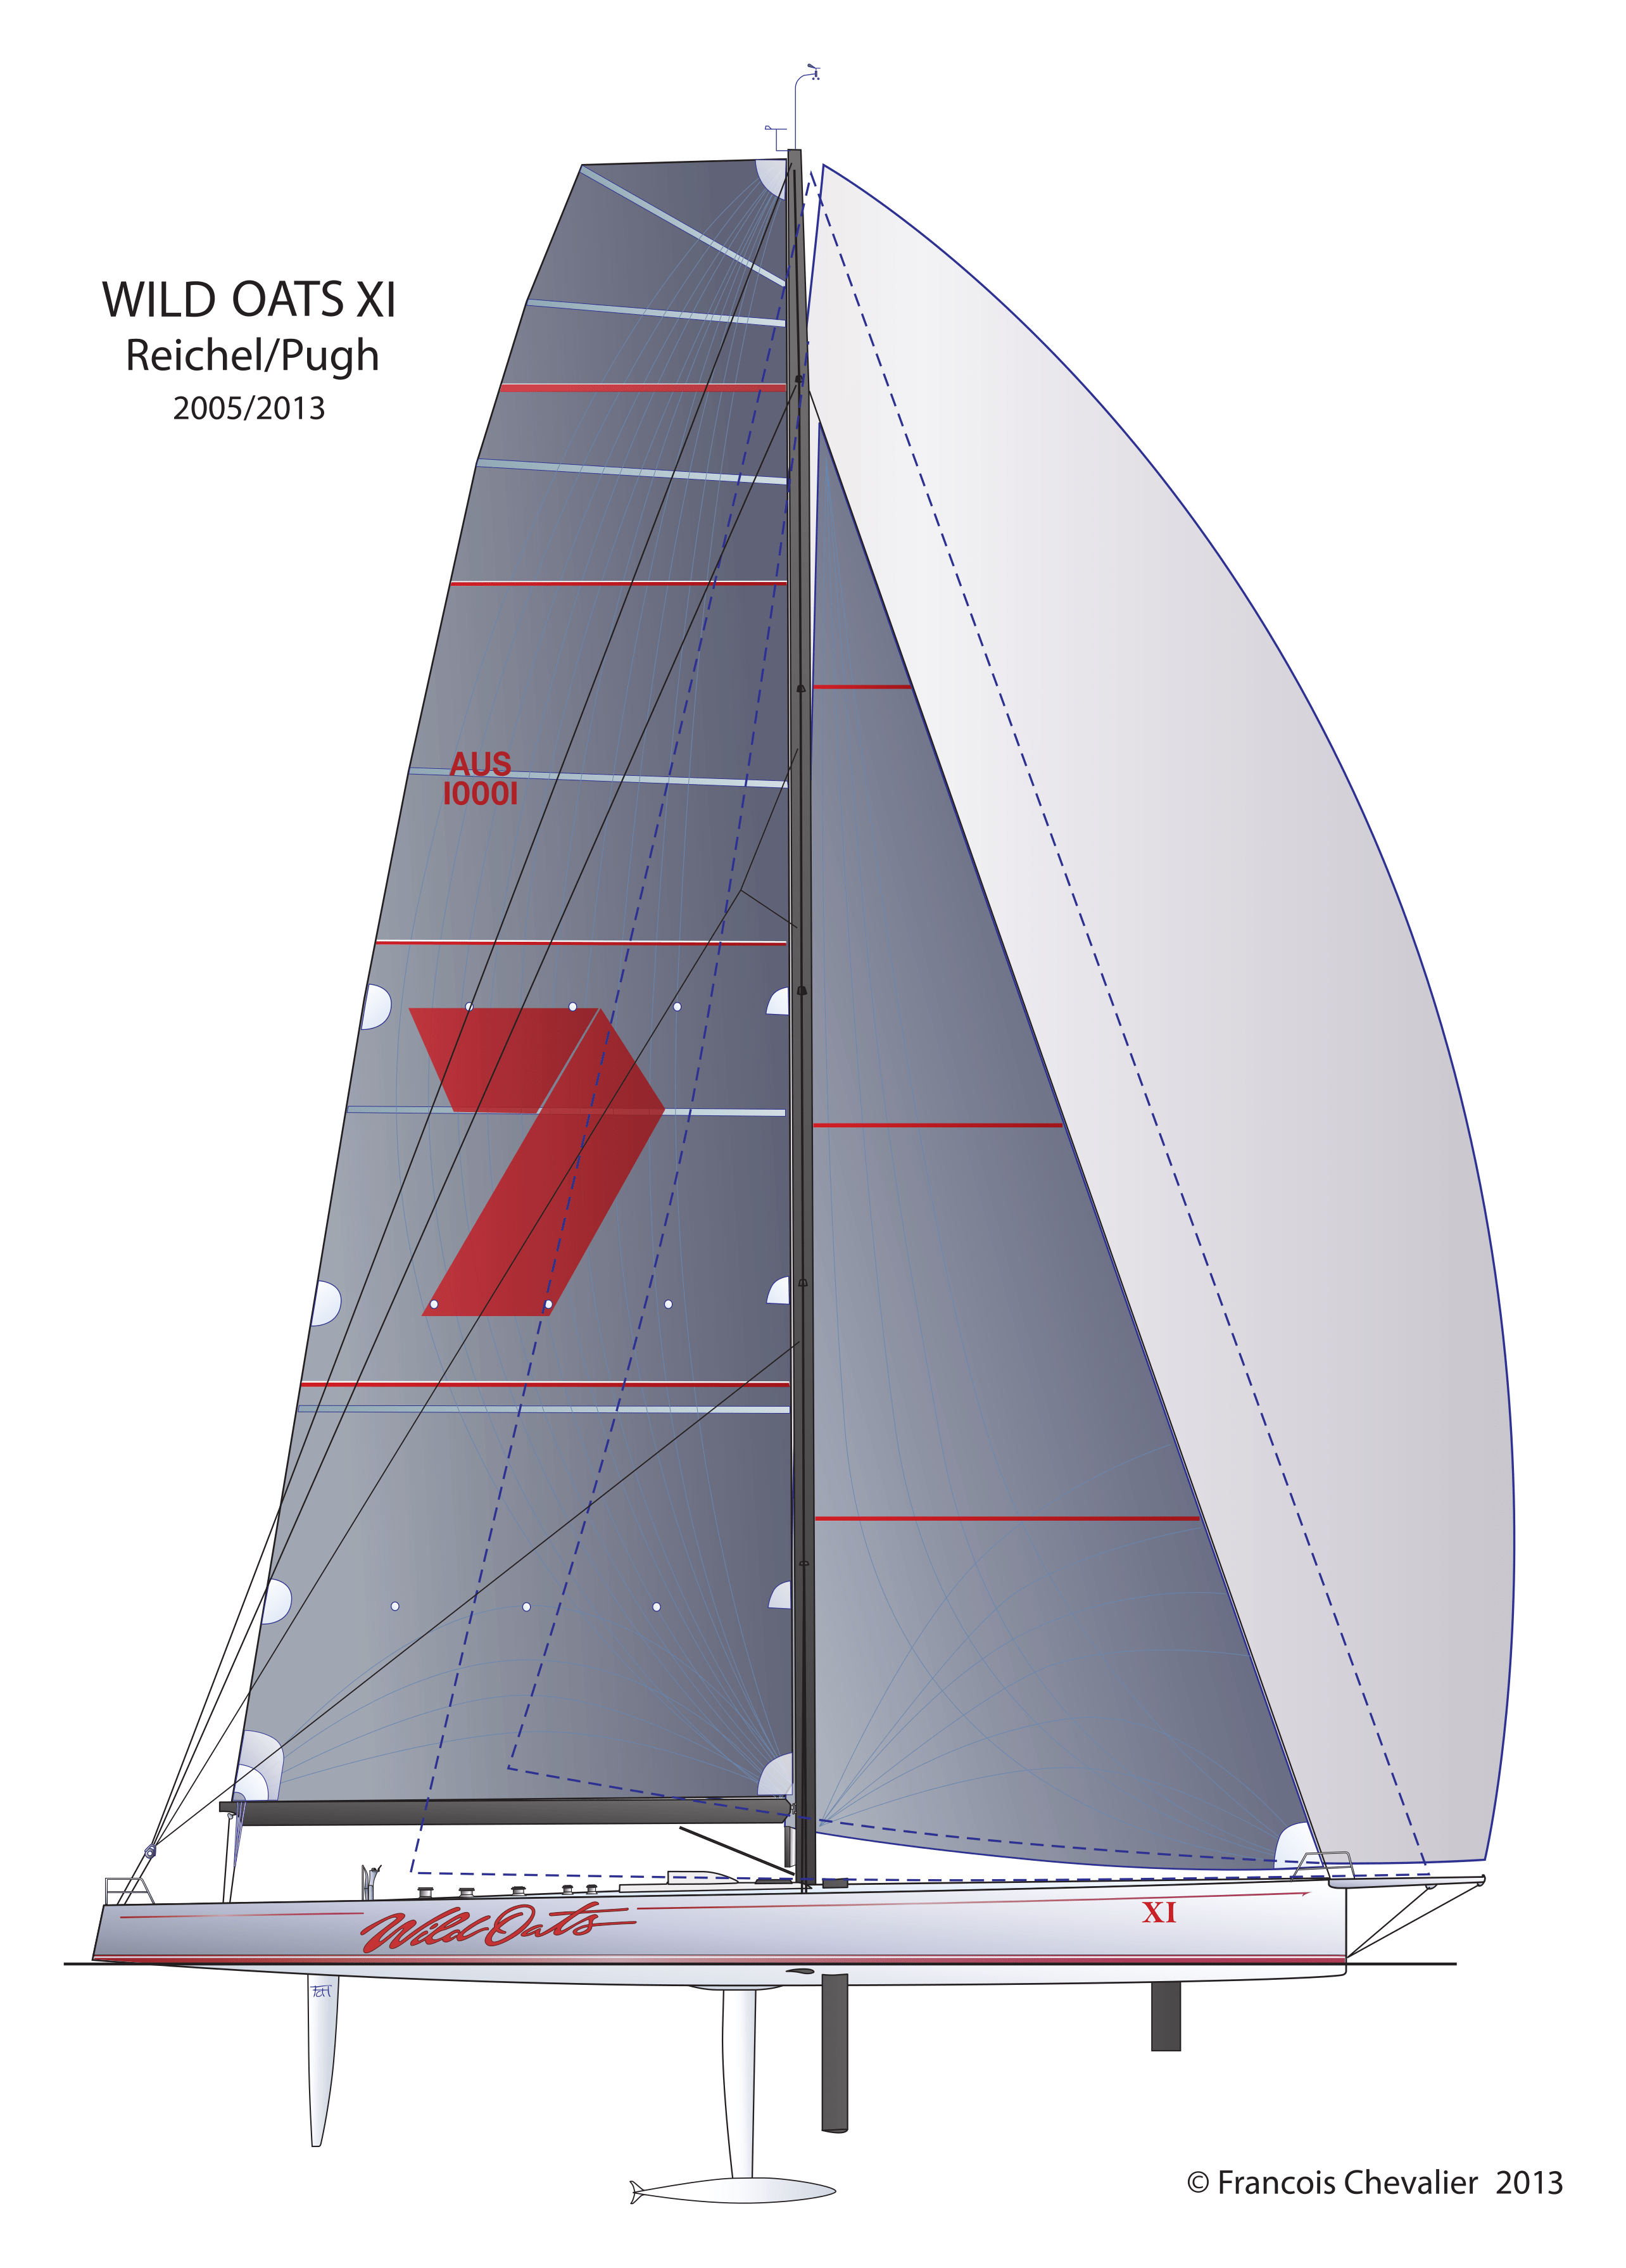 Donan Ravens Sailing Trivia The 100 Footers In The Sydney Hobart Race A Battle Of Giants